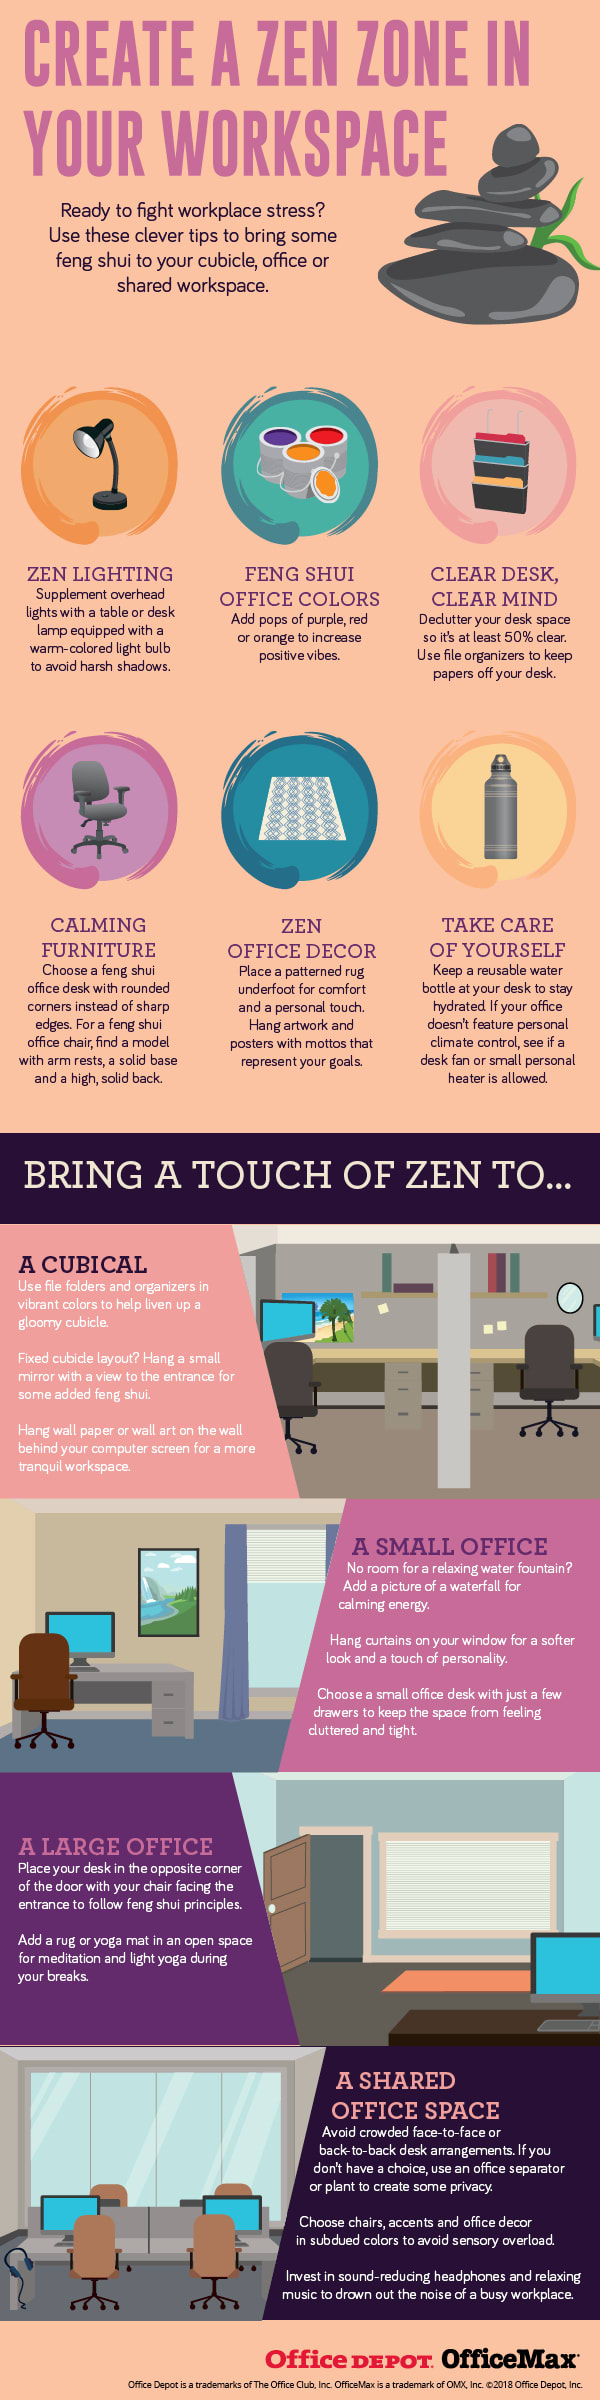 Create a Zen Zone in Your Workspace Infographic